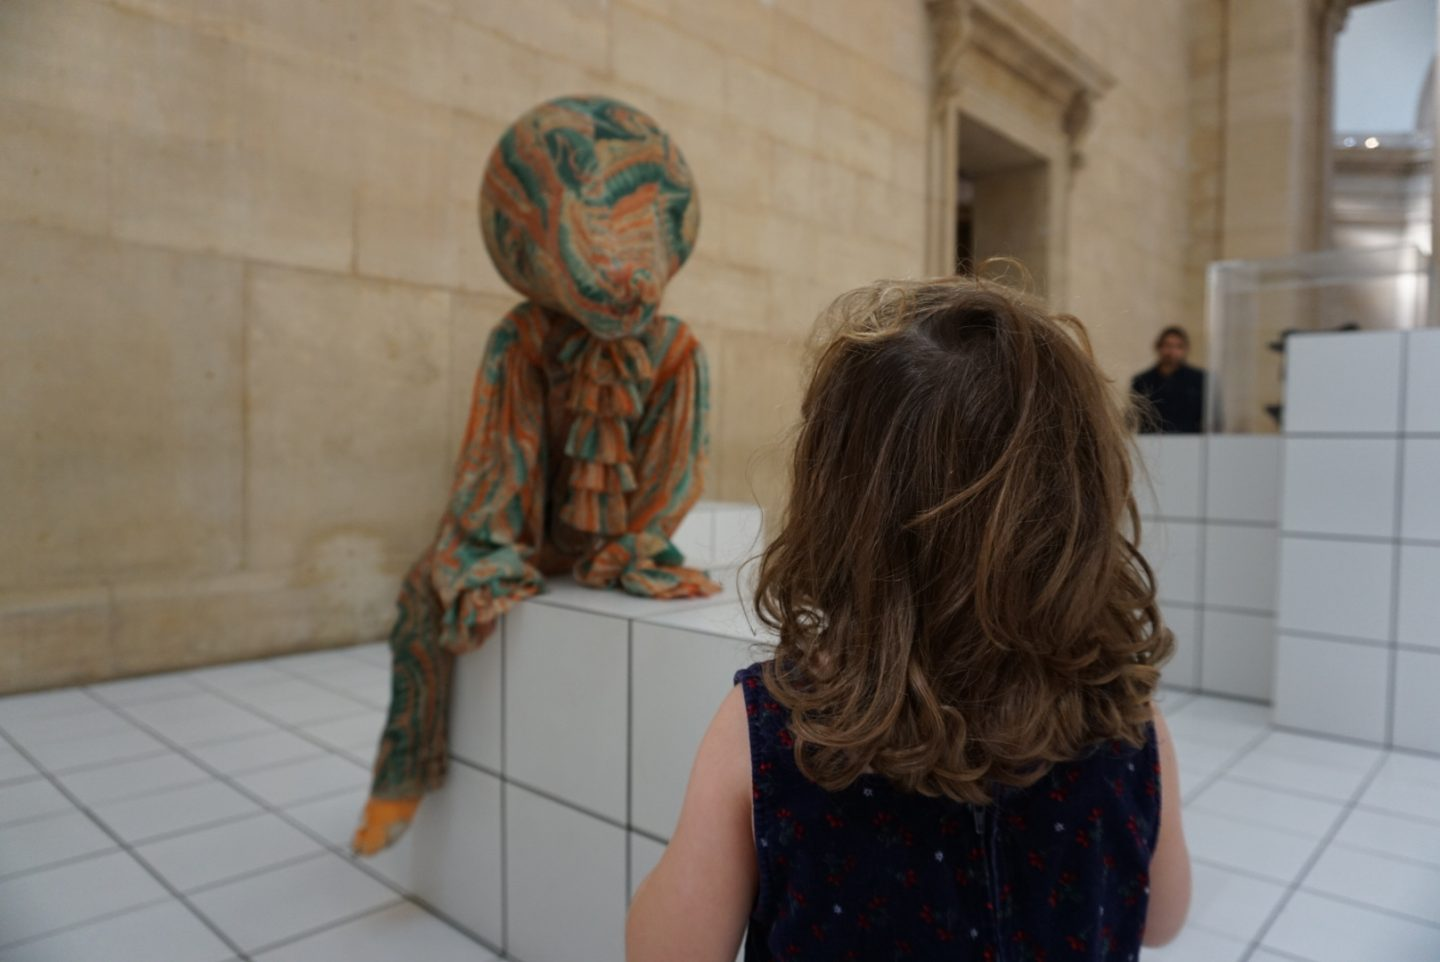 Meeting The Squash at TATE Britain